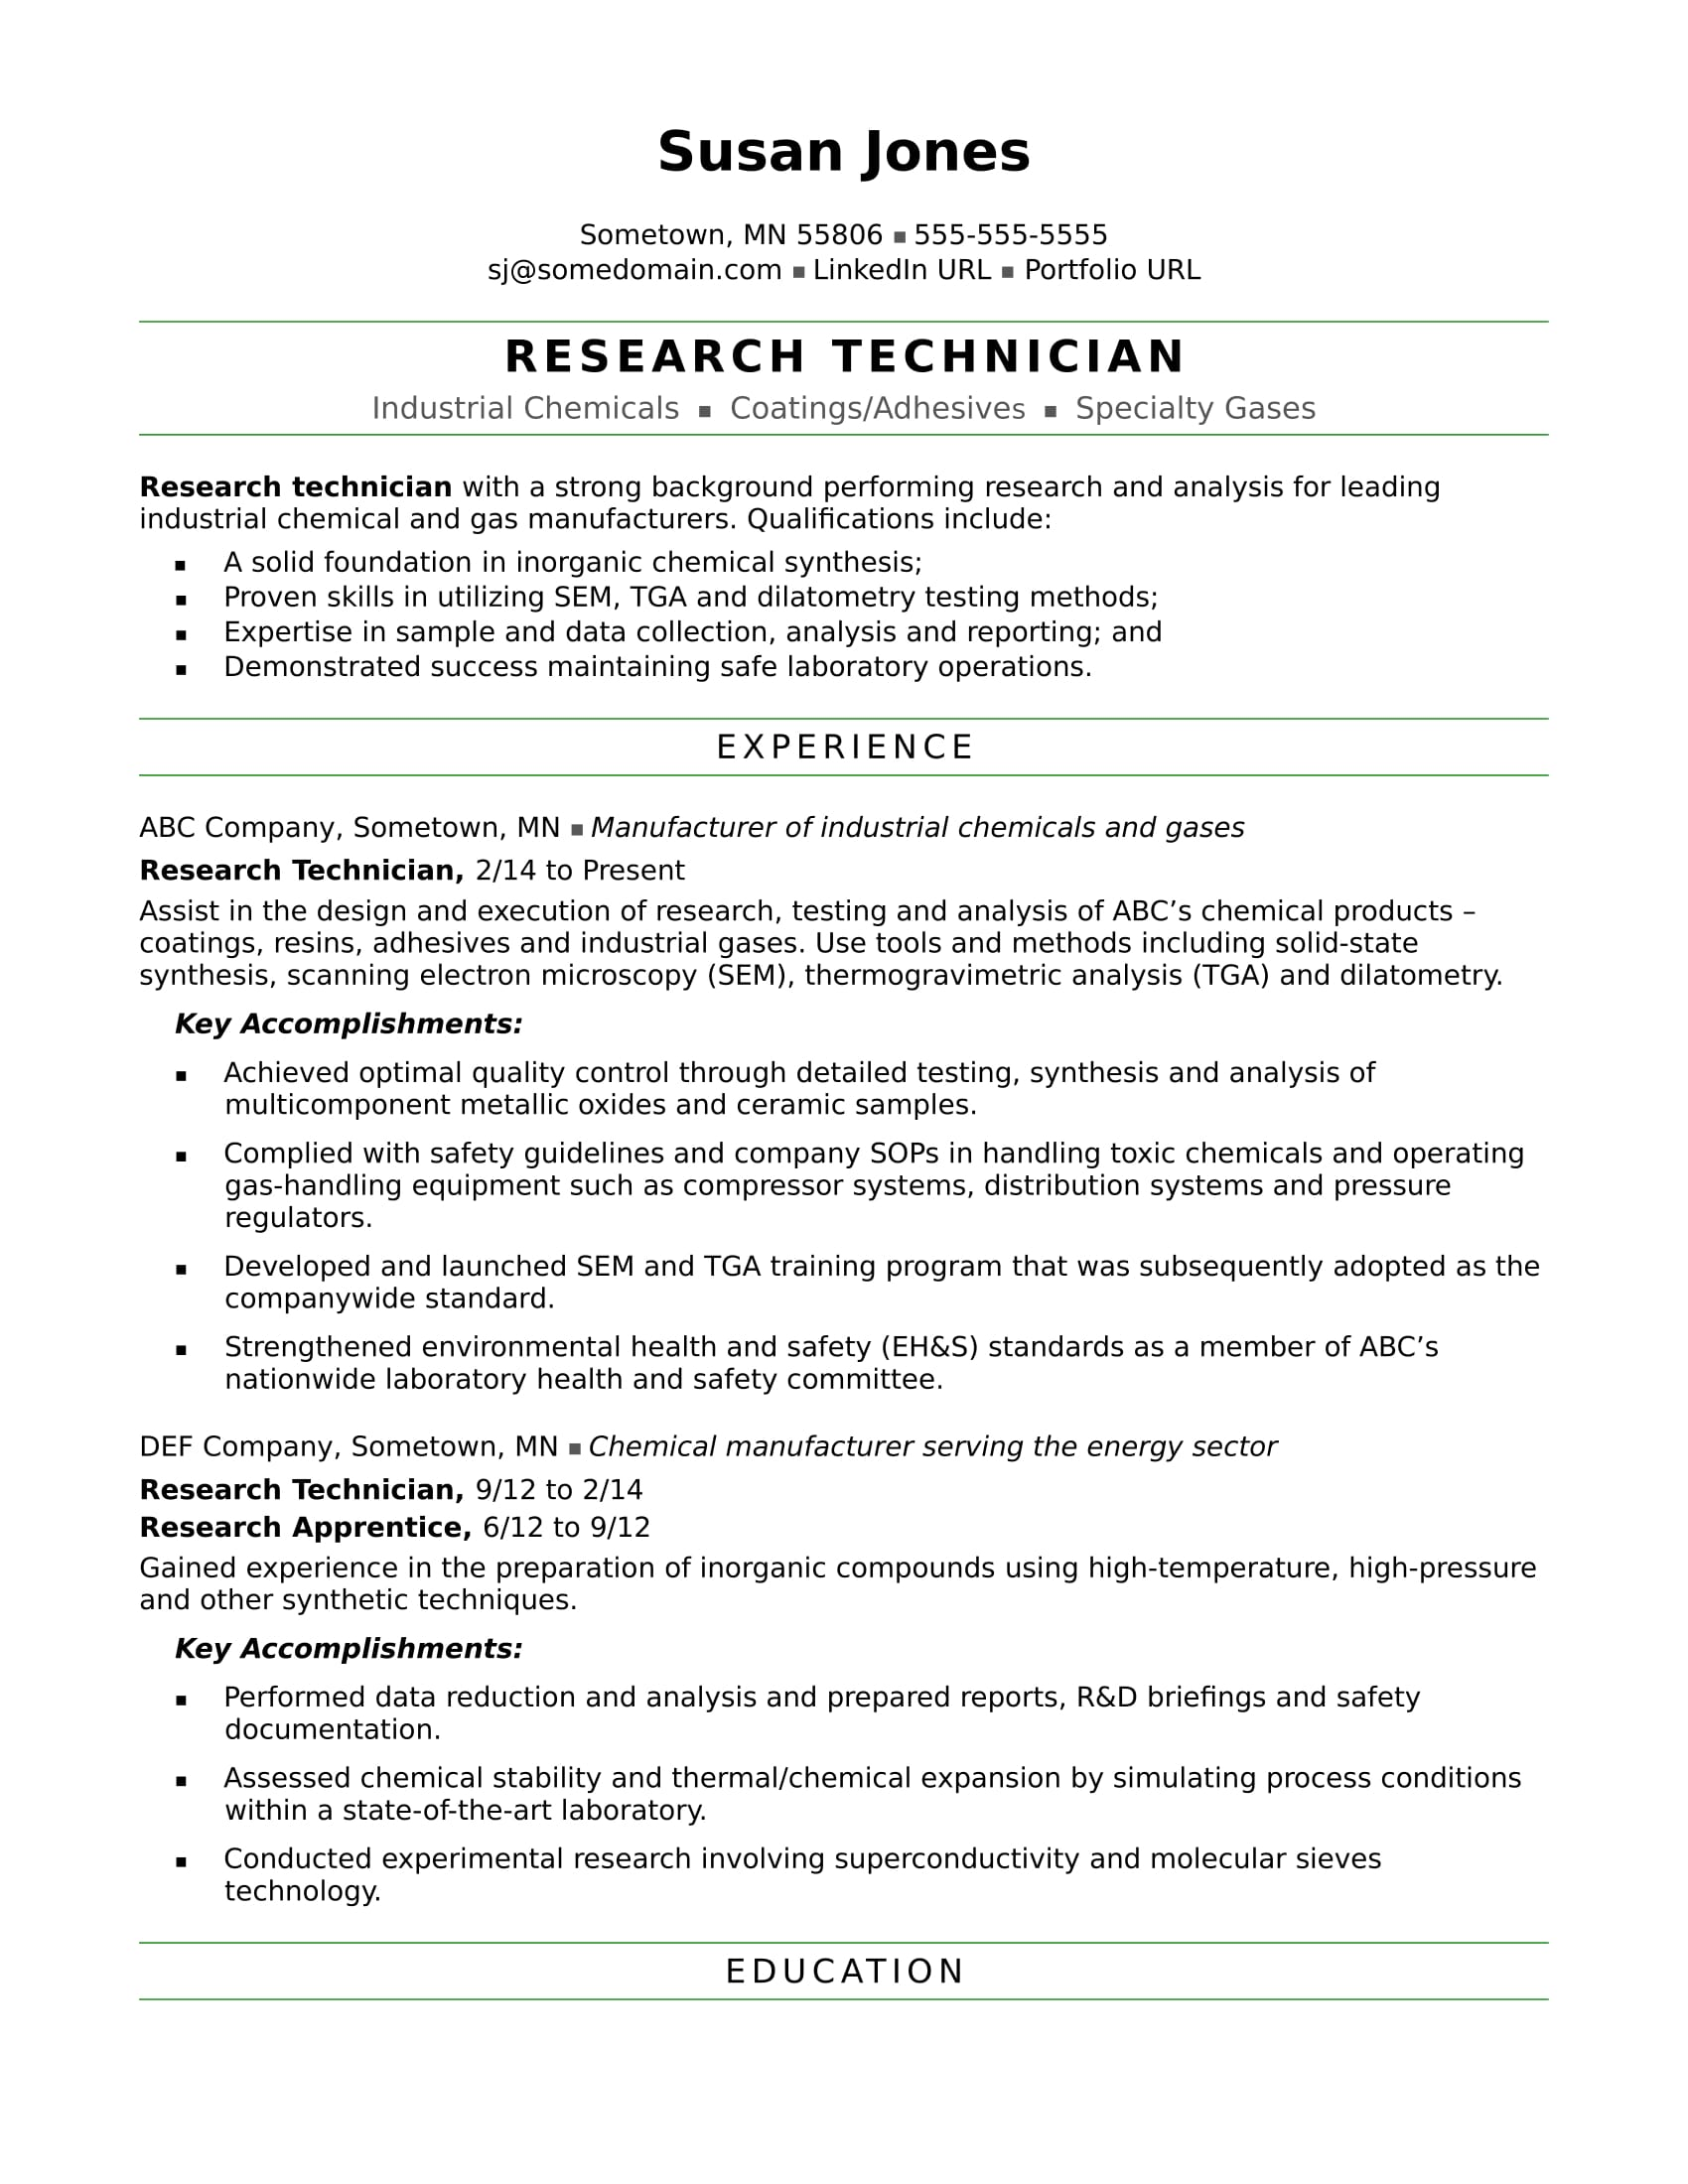 Research Technician Resume Sample | Monster.Com